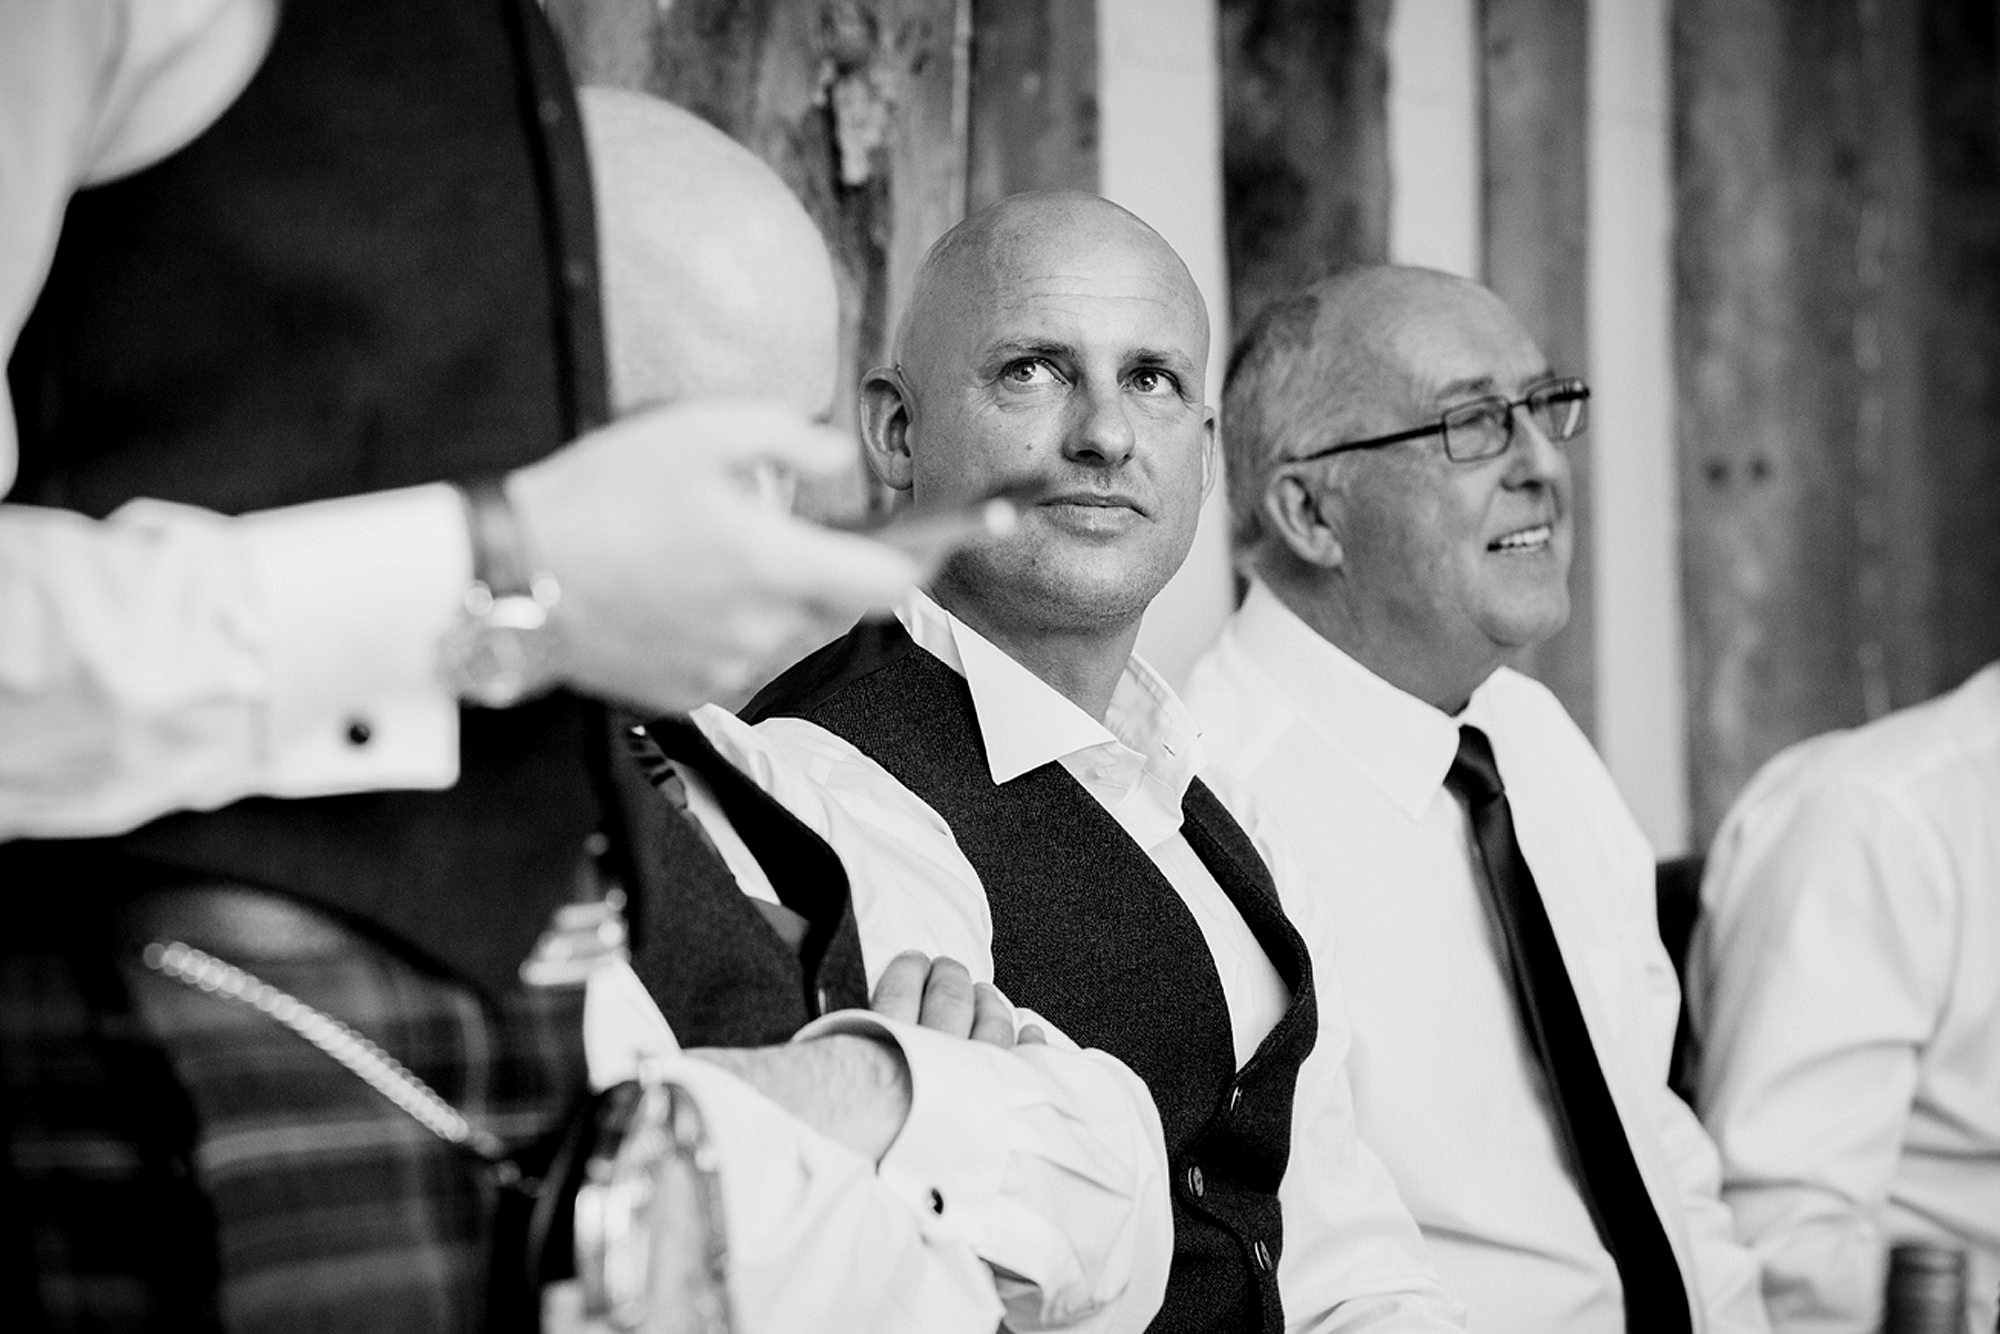 outdoor humanist wedding photography best man during speeches